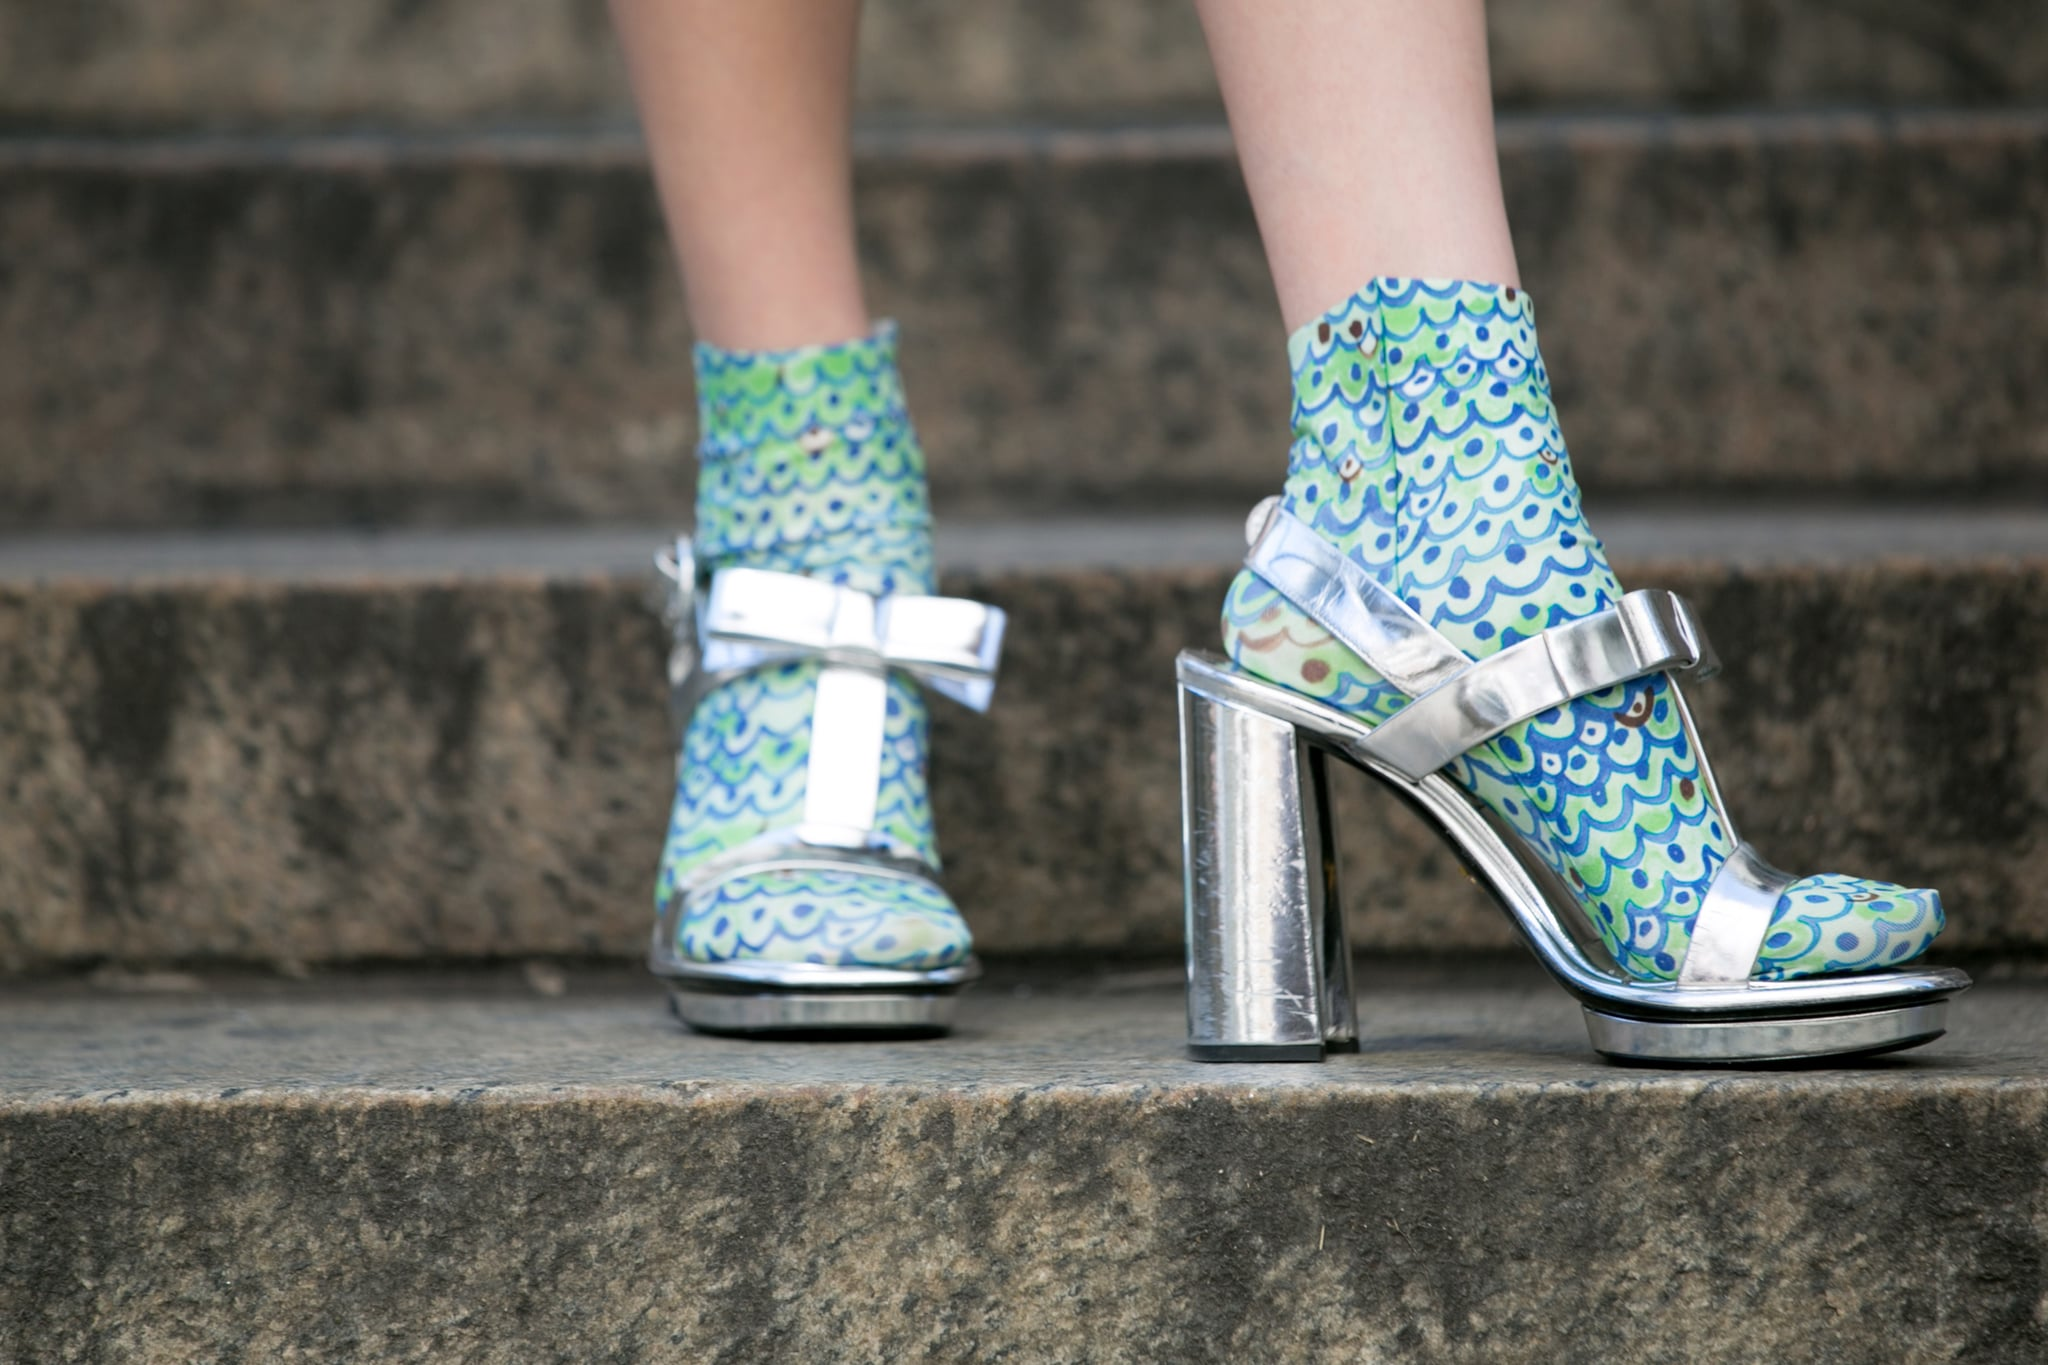 Statement shoes are even more attention-grabbing with statement socks.